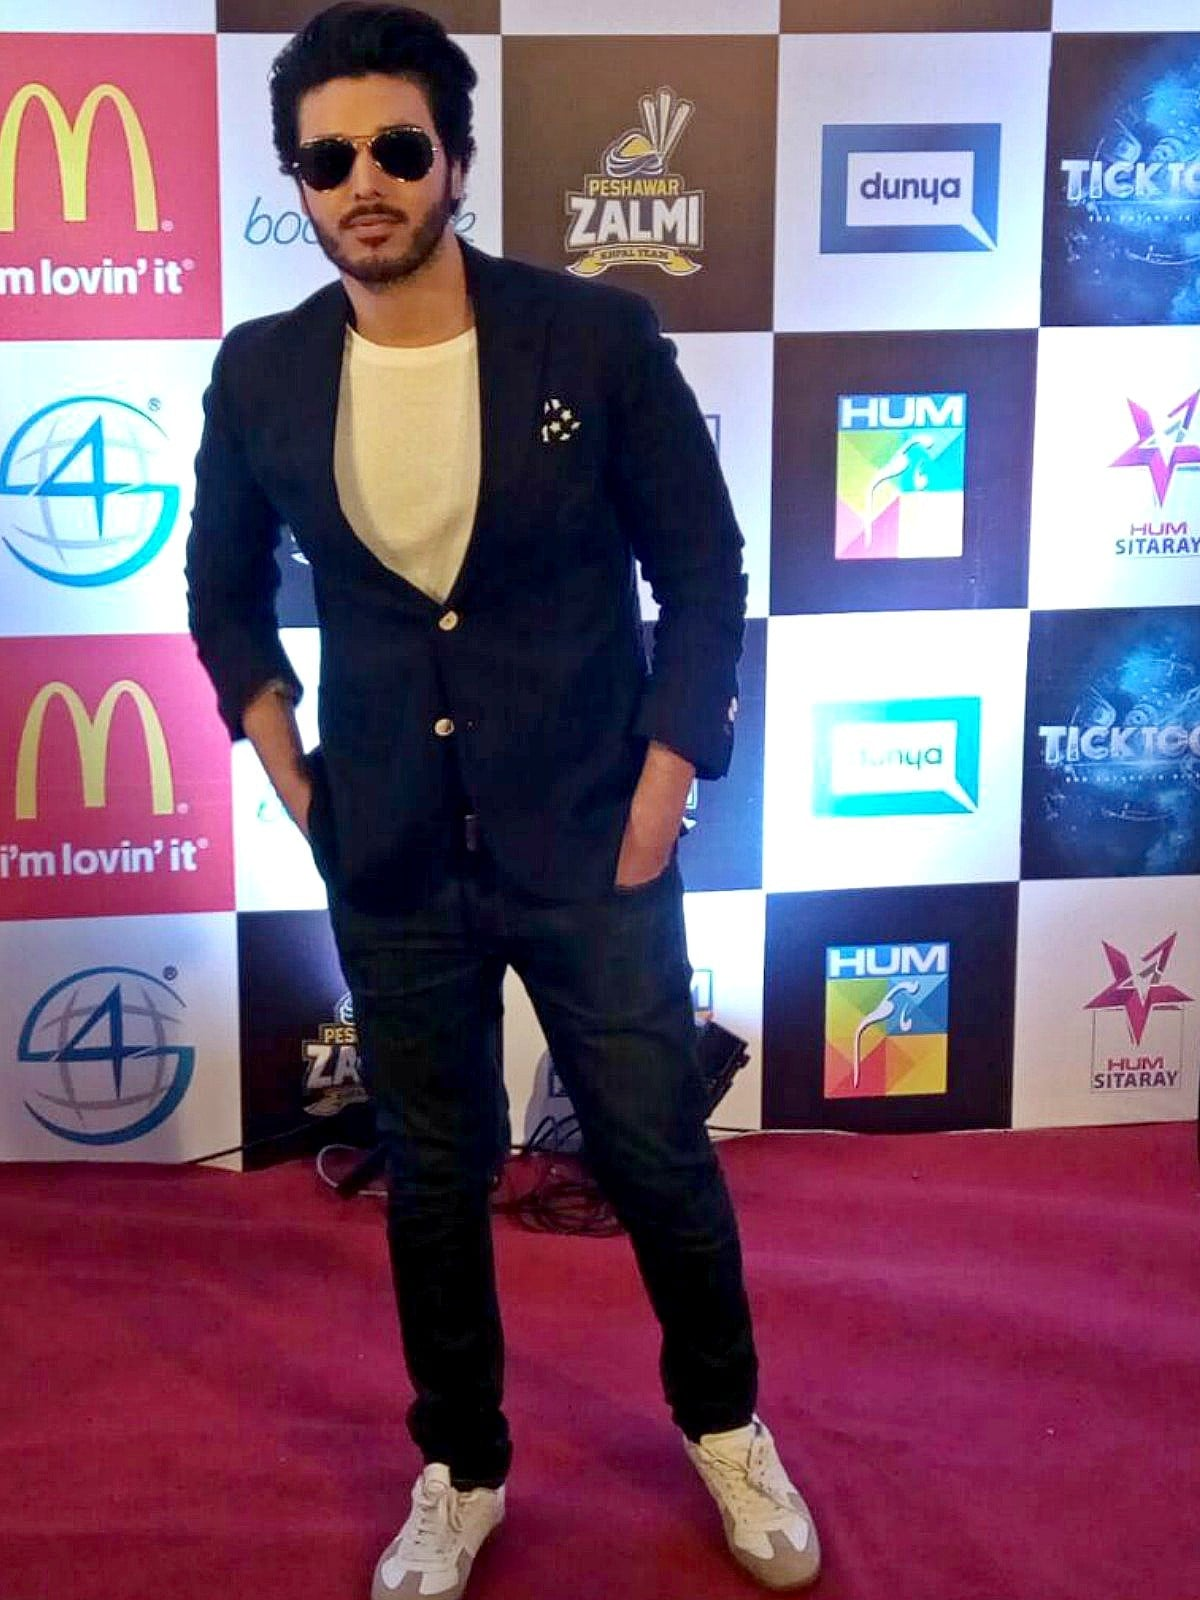 Ahsan Khan at the trailer launch of his latest project, the children's animated movie Tick Tock